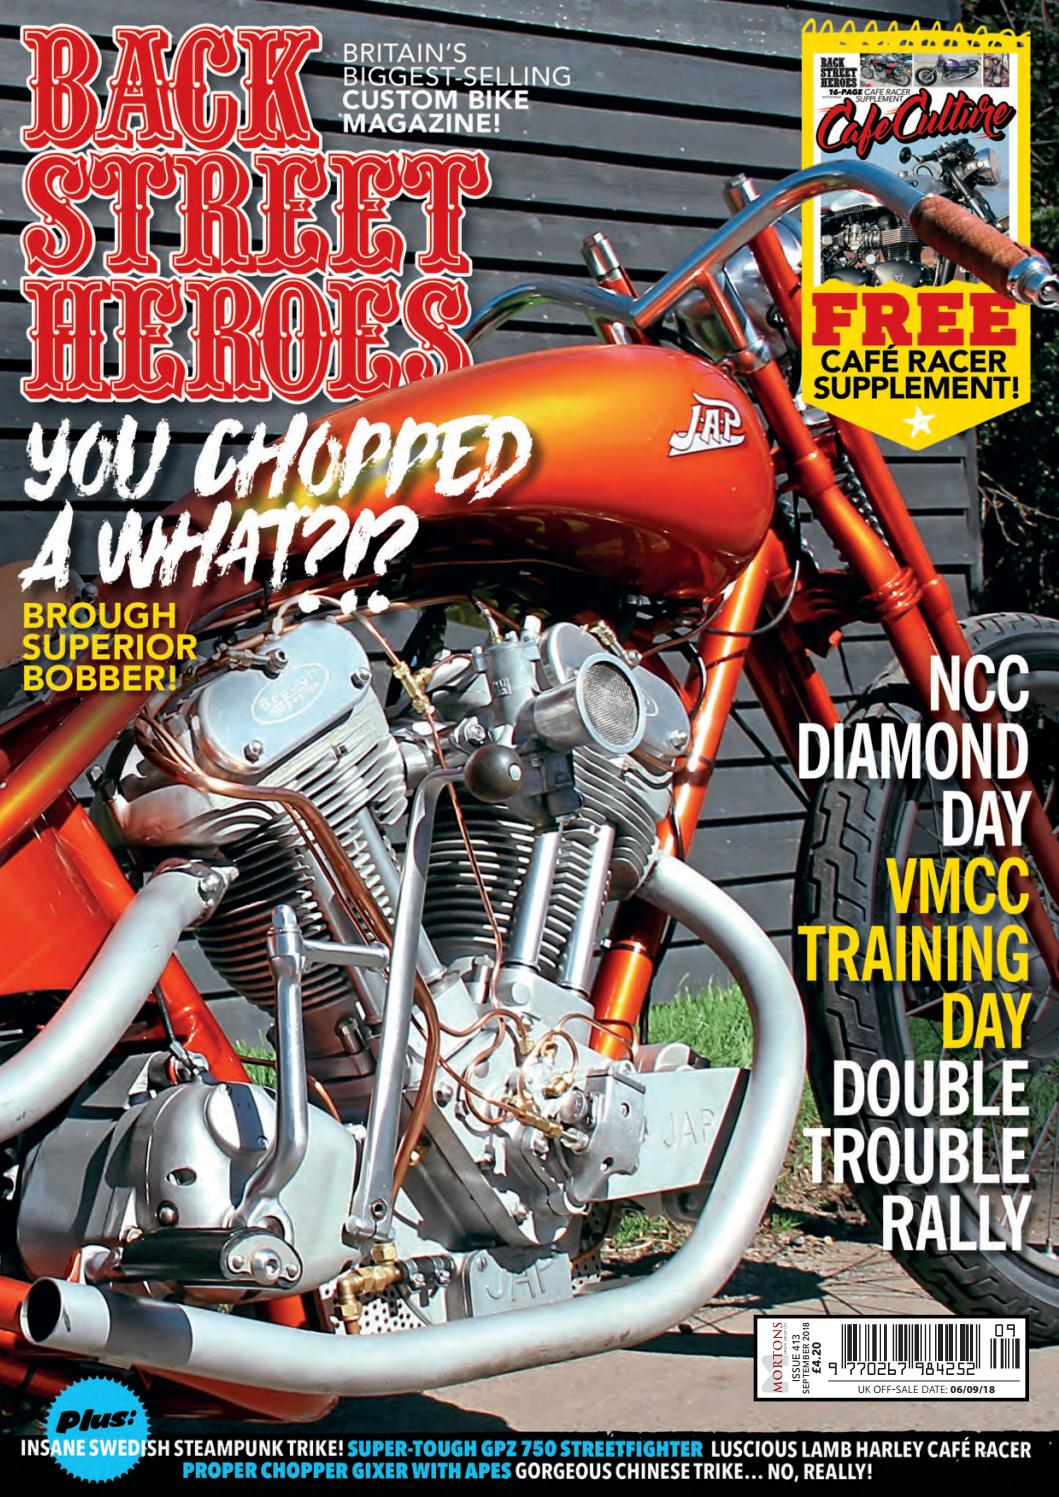 73c849bef5 Back Street Heroes - 413 September 2018 by Mortons Media Group Ltd - issuu